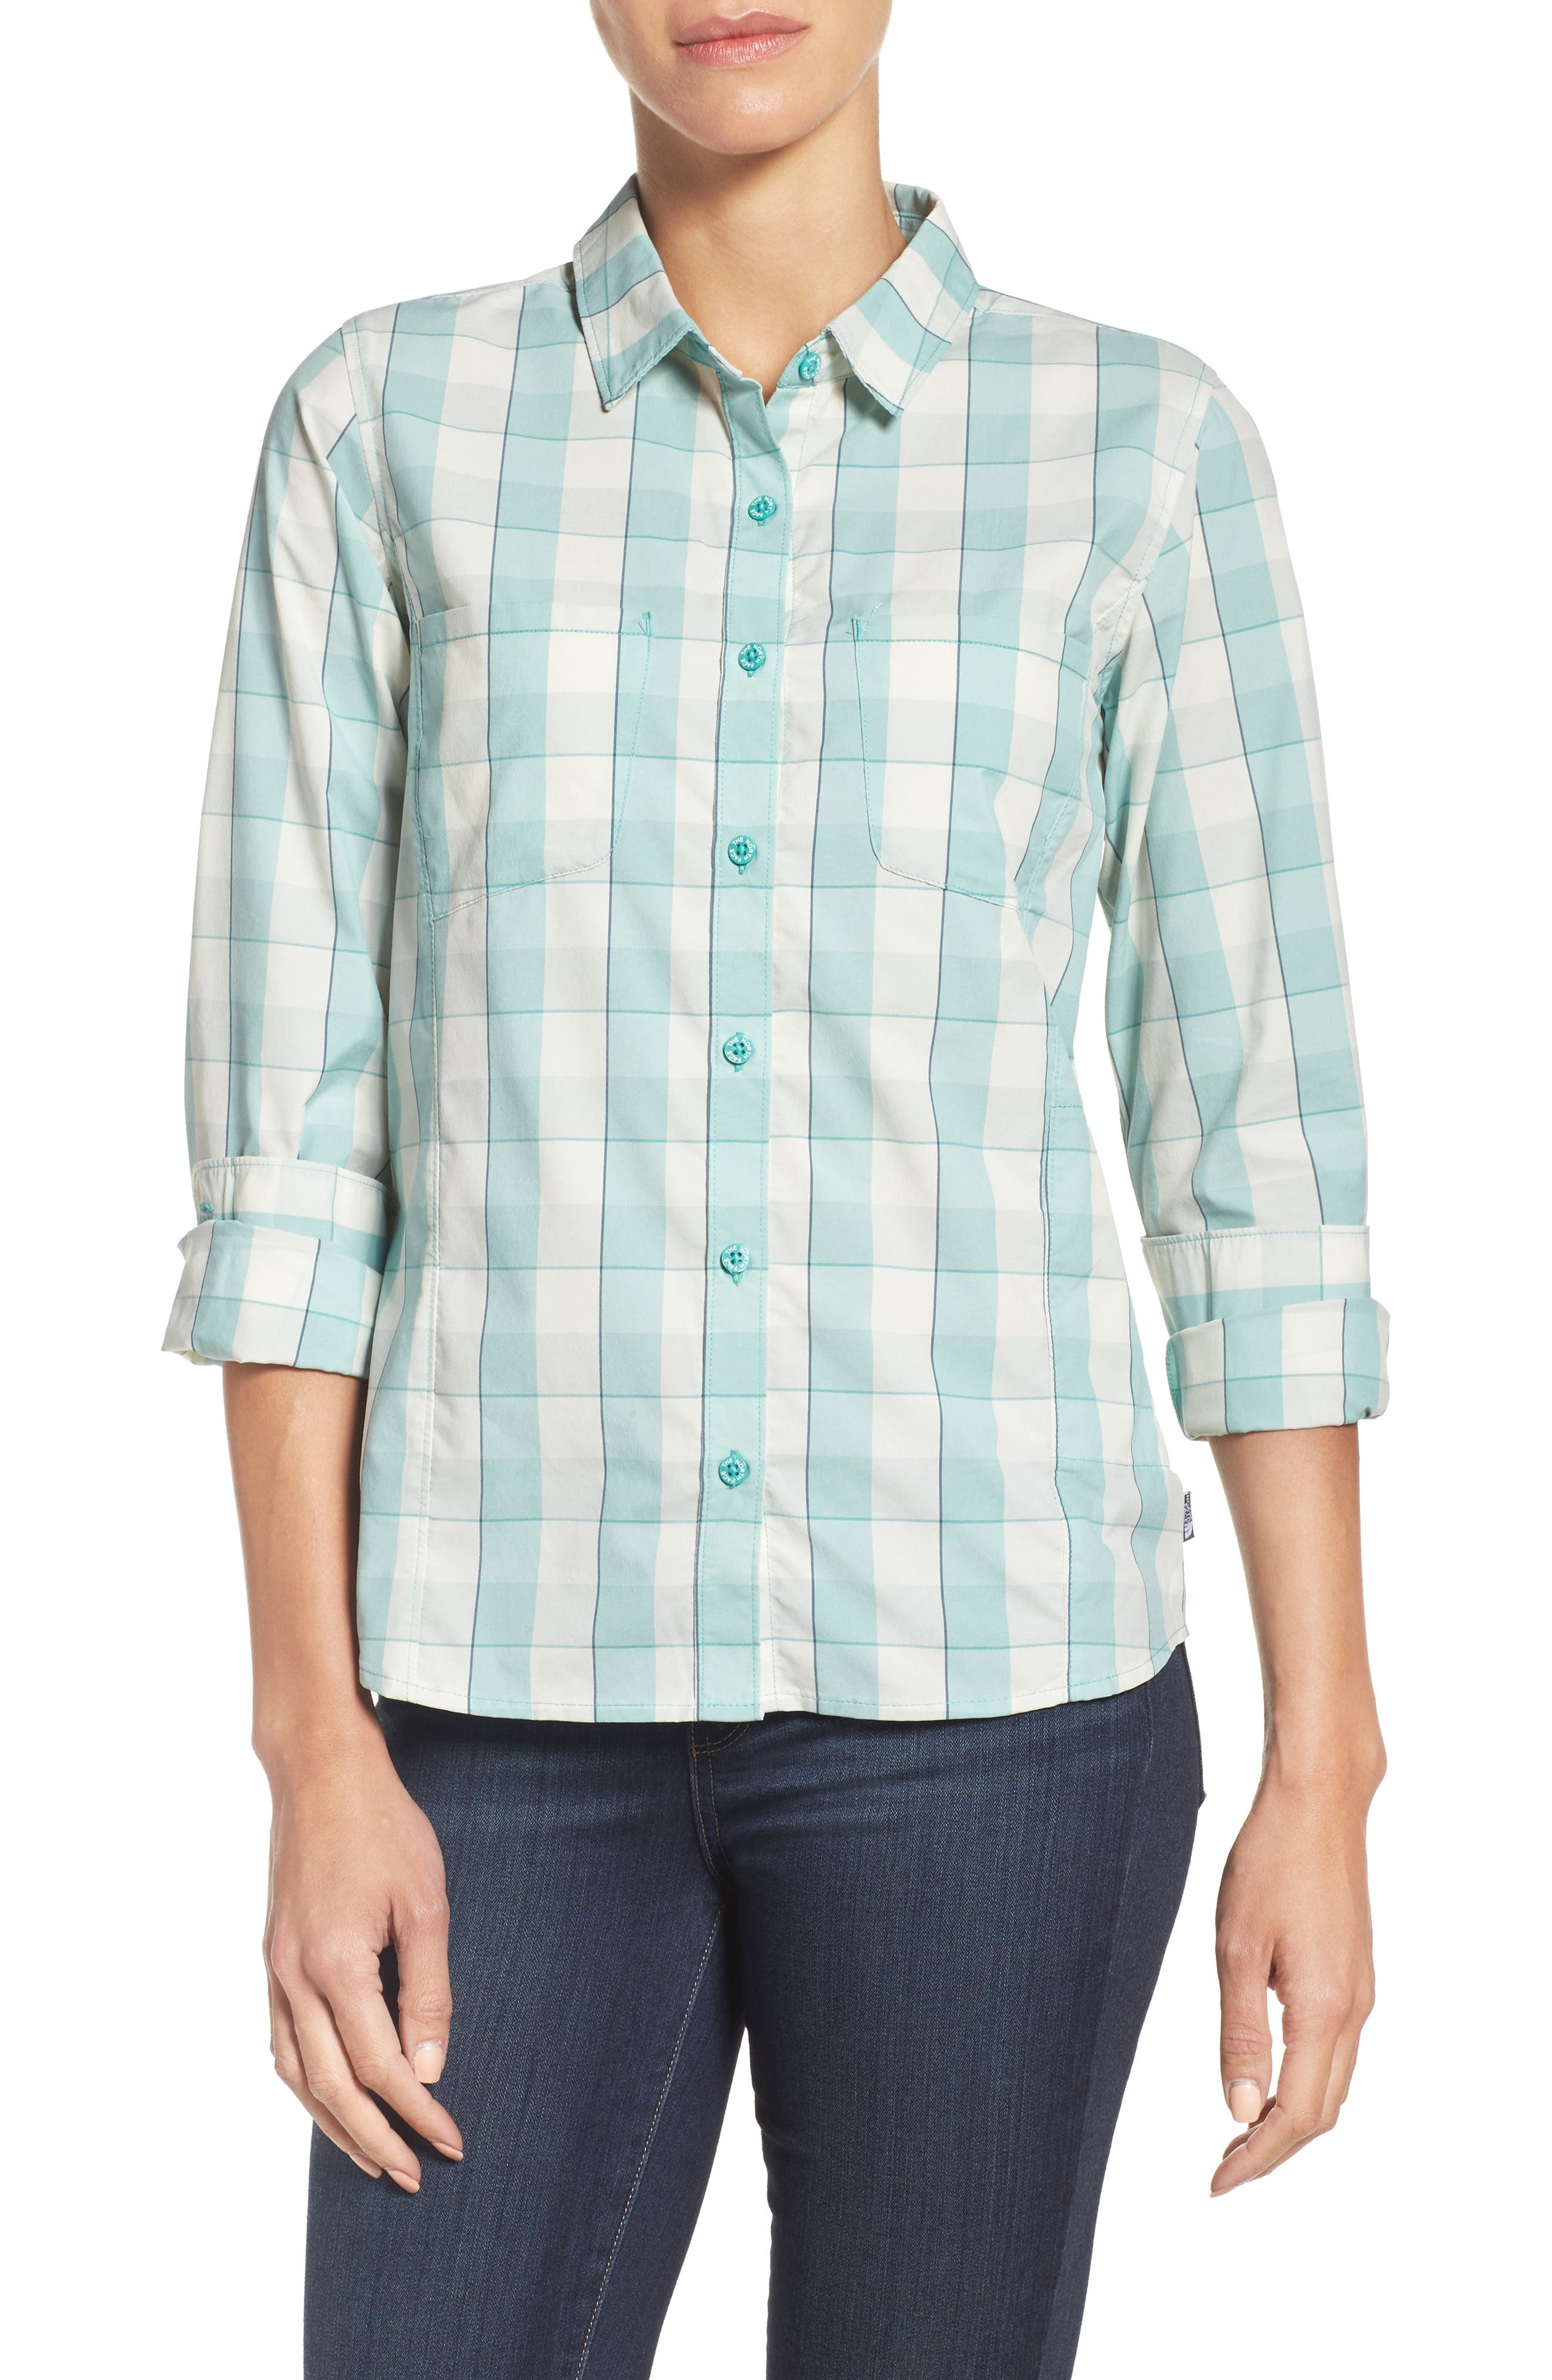 Alternate Image 1 Selected - The North Face Sunblocker Twill Shirt